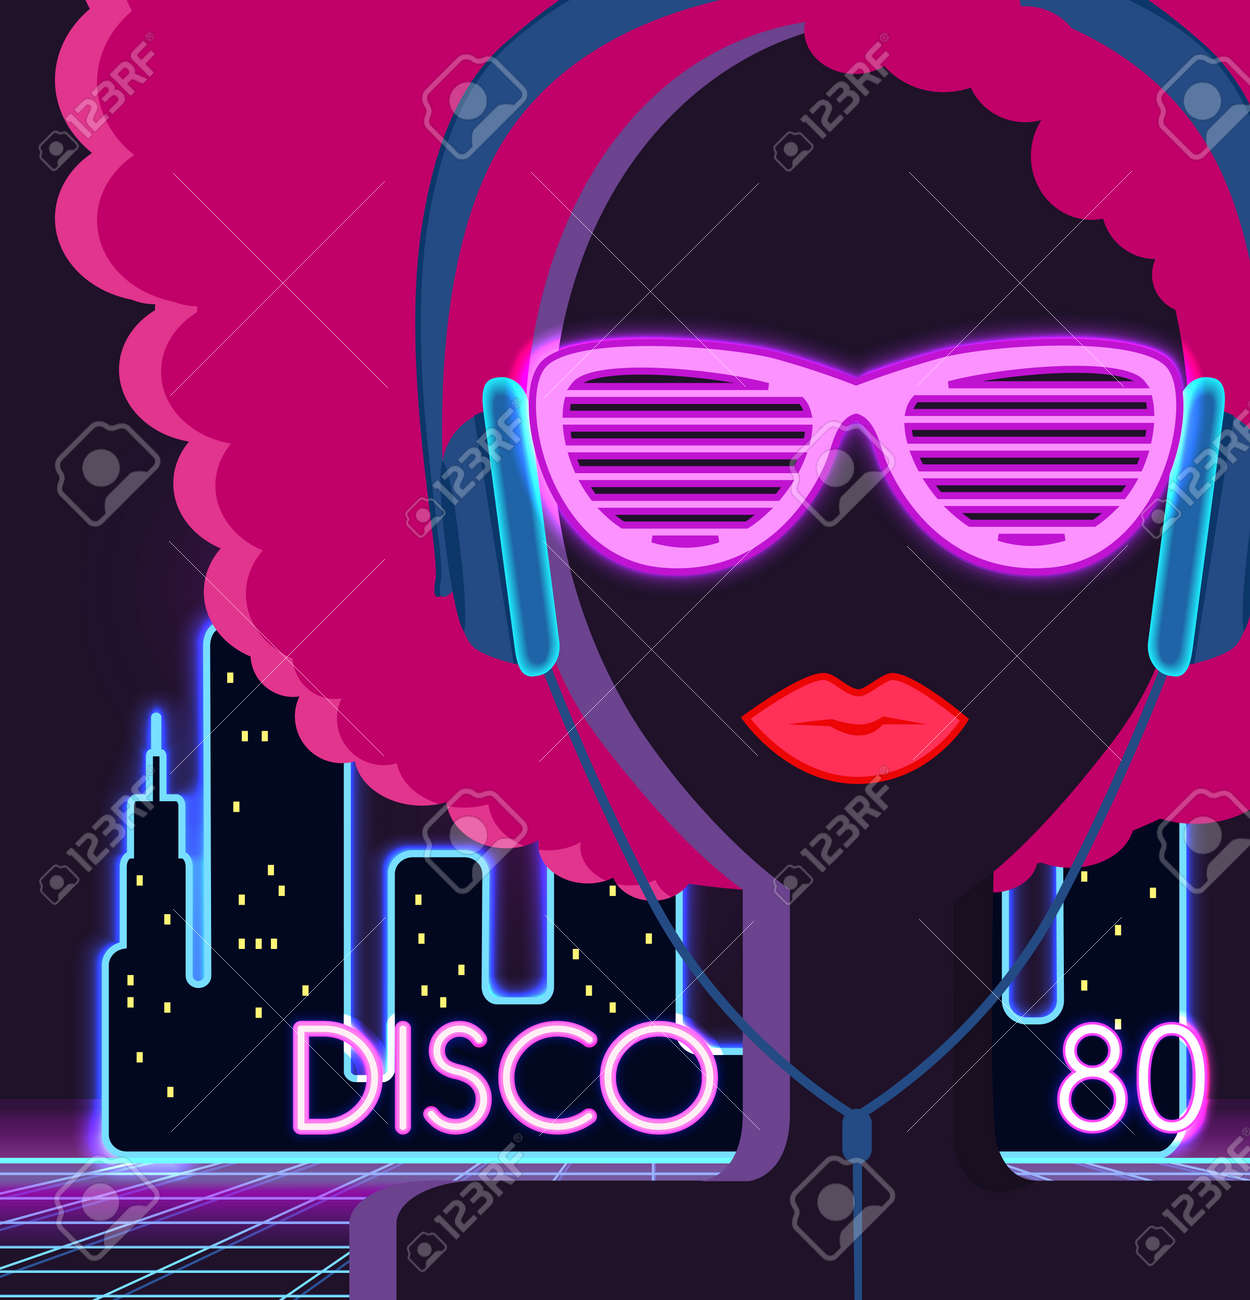 Disco 80s  Girl with headphones  Party and dance, dj and club,